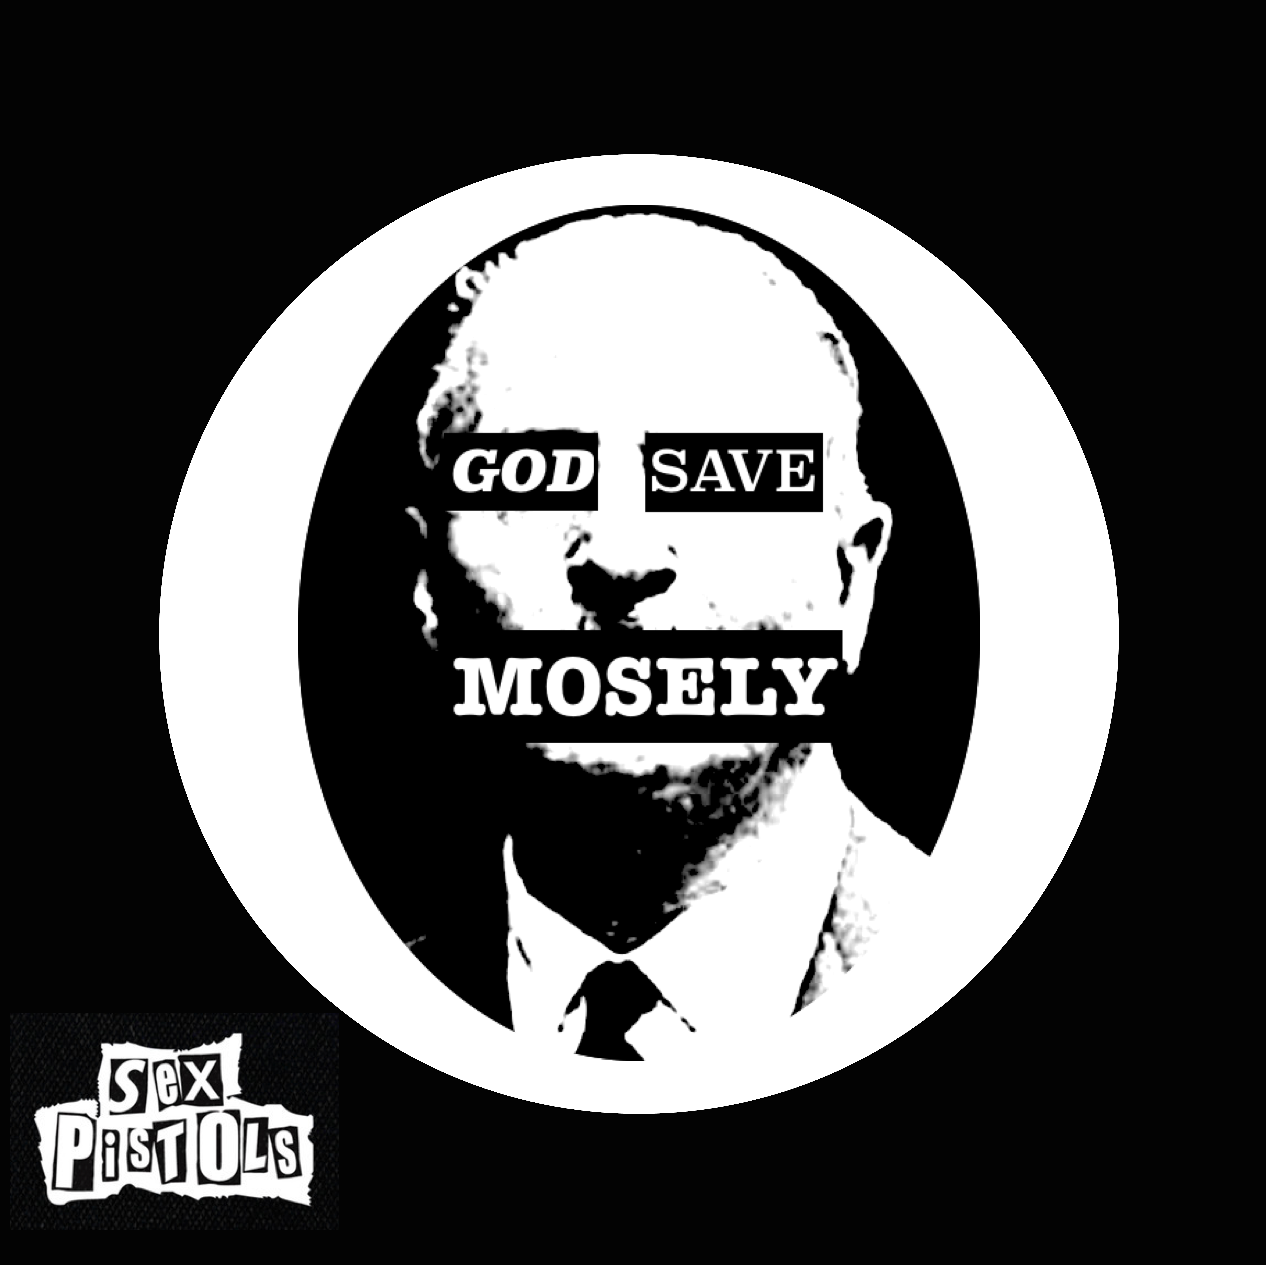 Sex Pistols. God Save Mosely.png